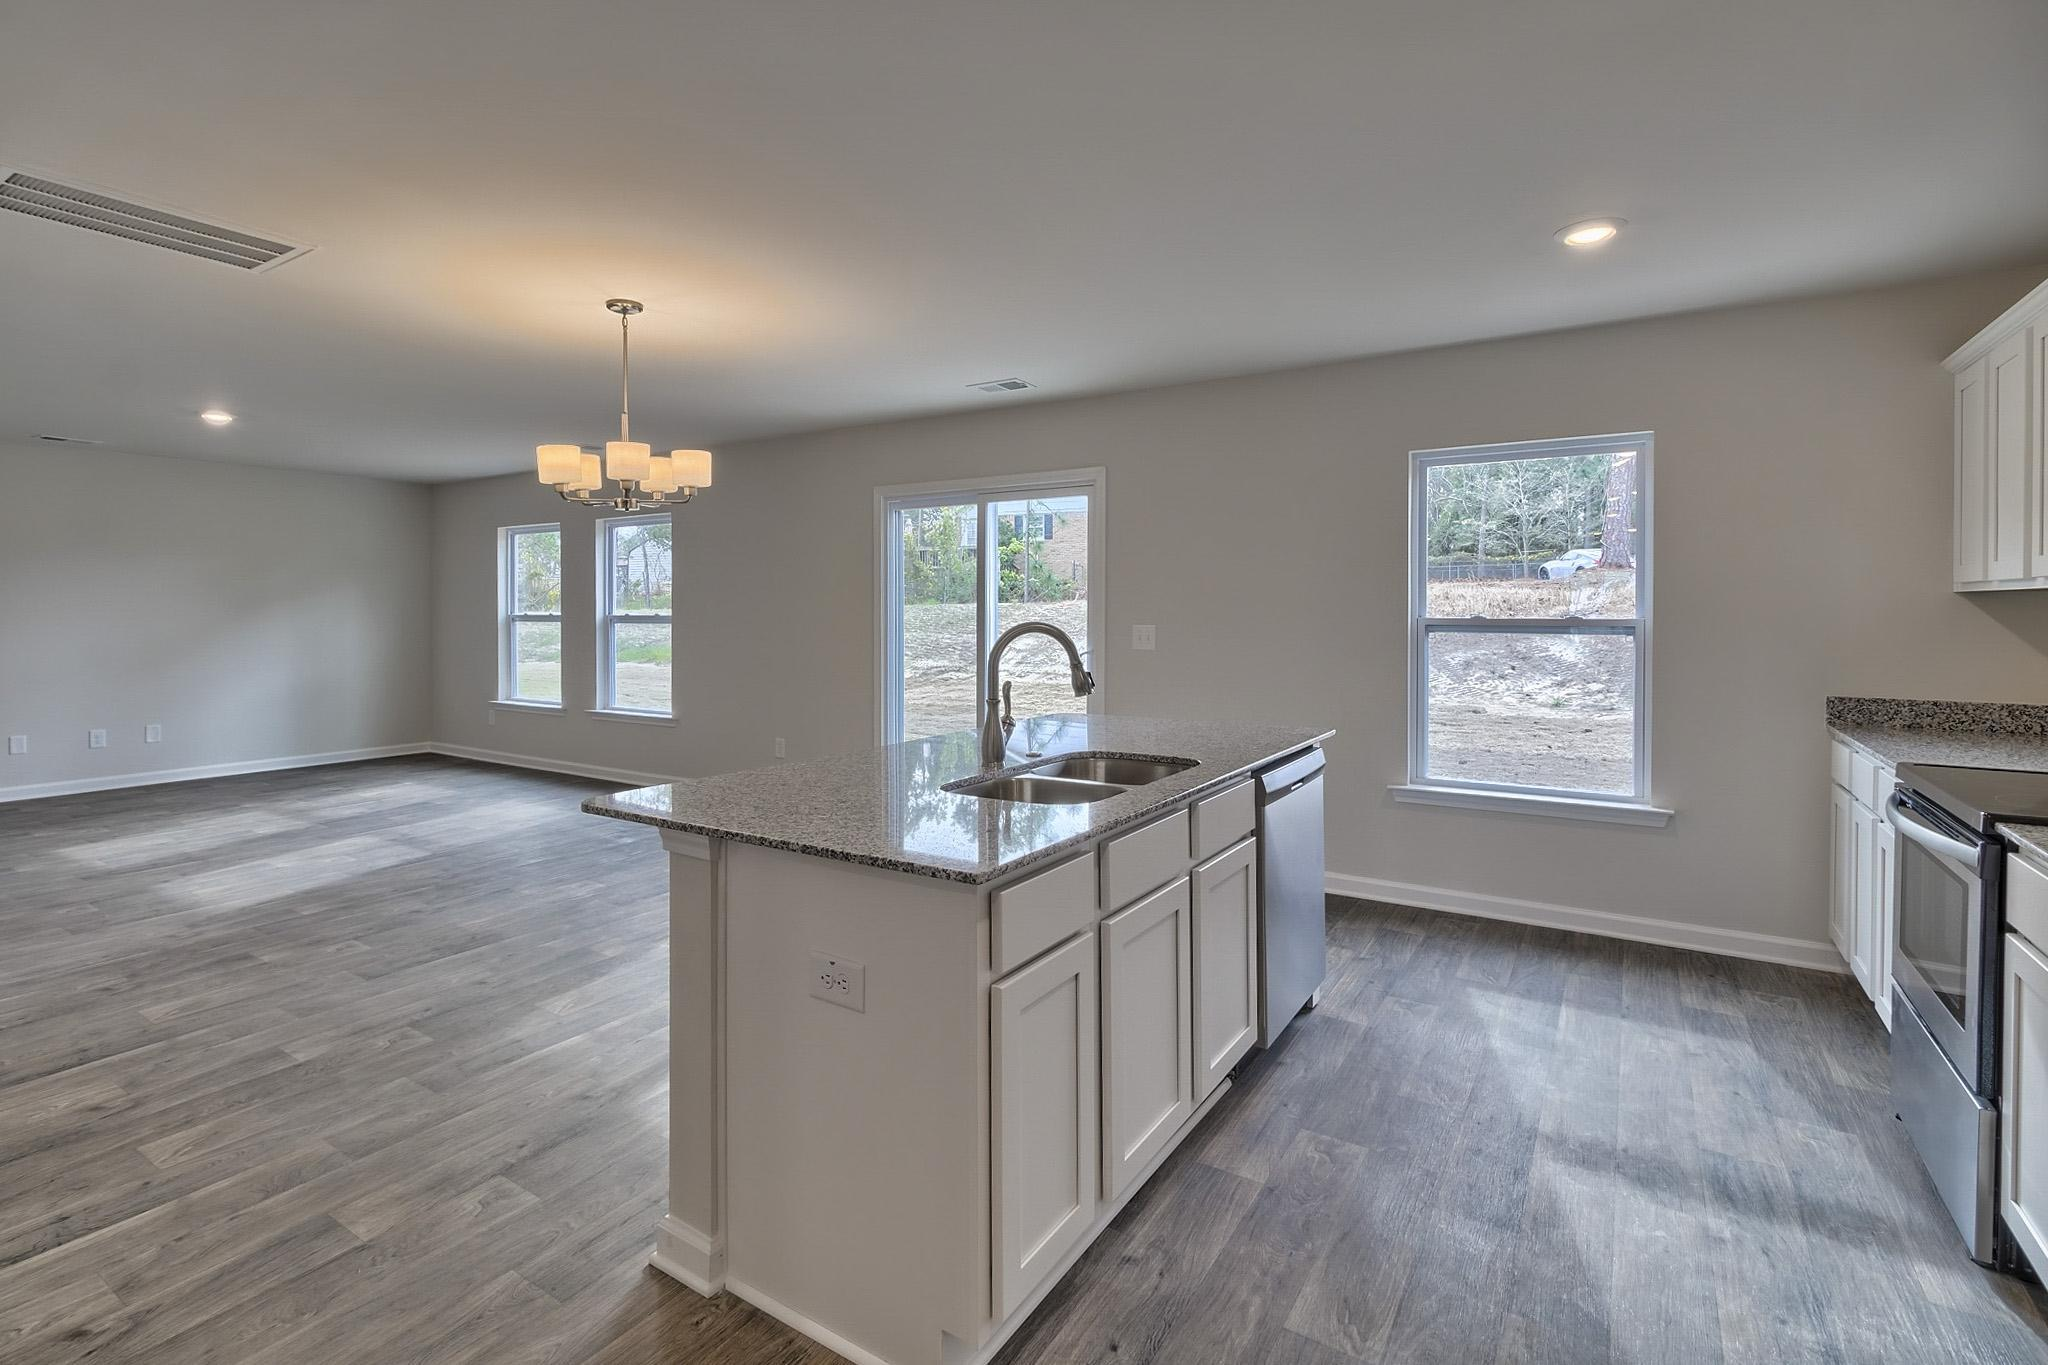 Kitchen featured in the Maple B By McGuinn Hybrid Homes in Columbia, SC